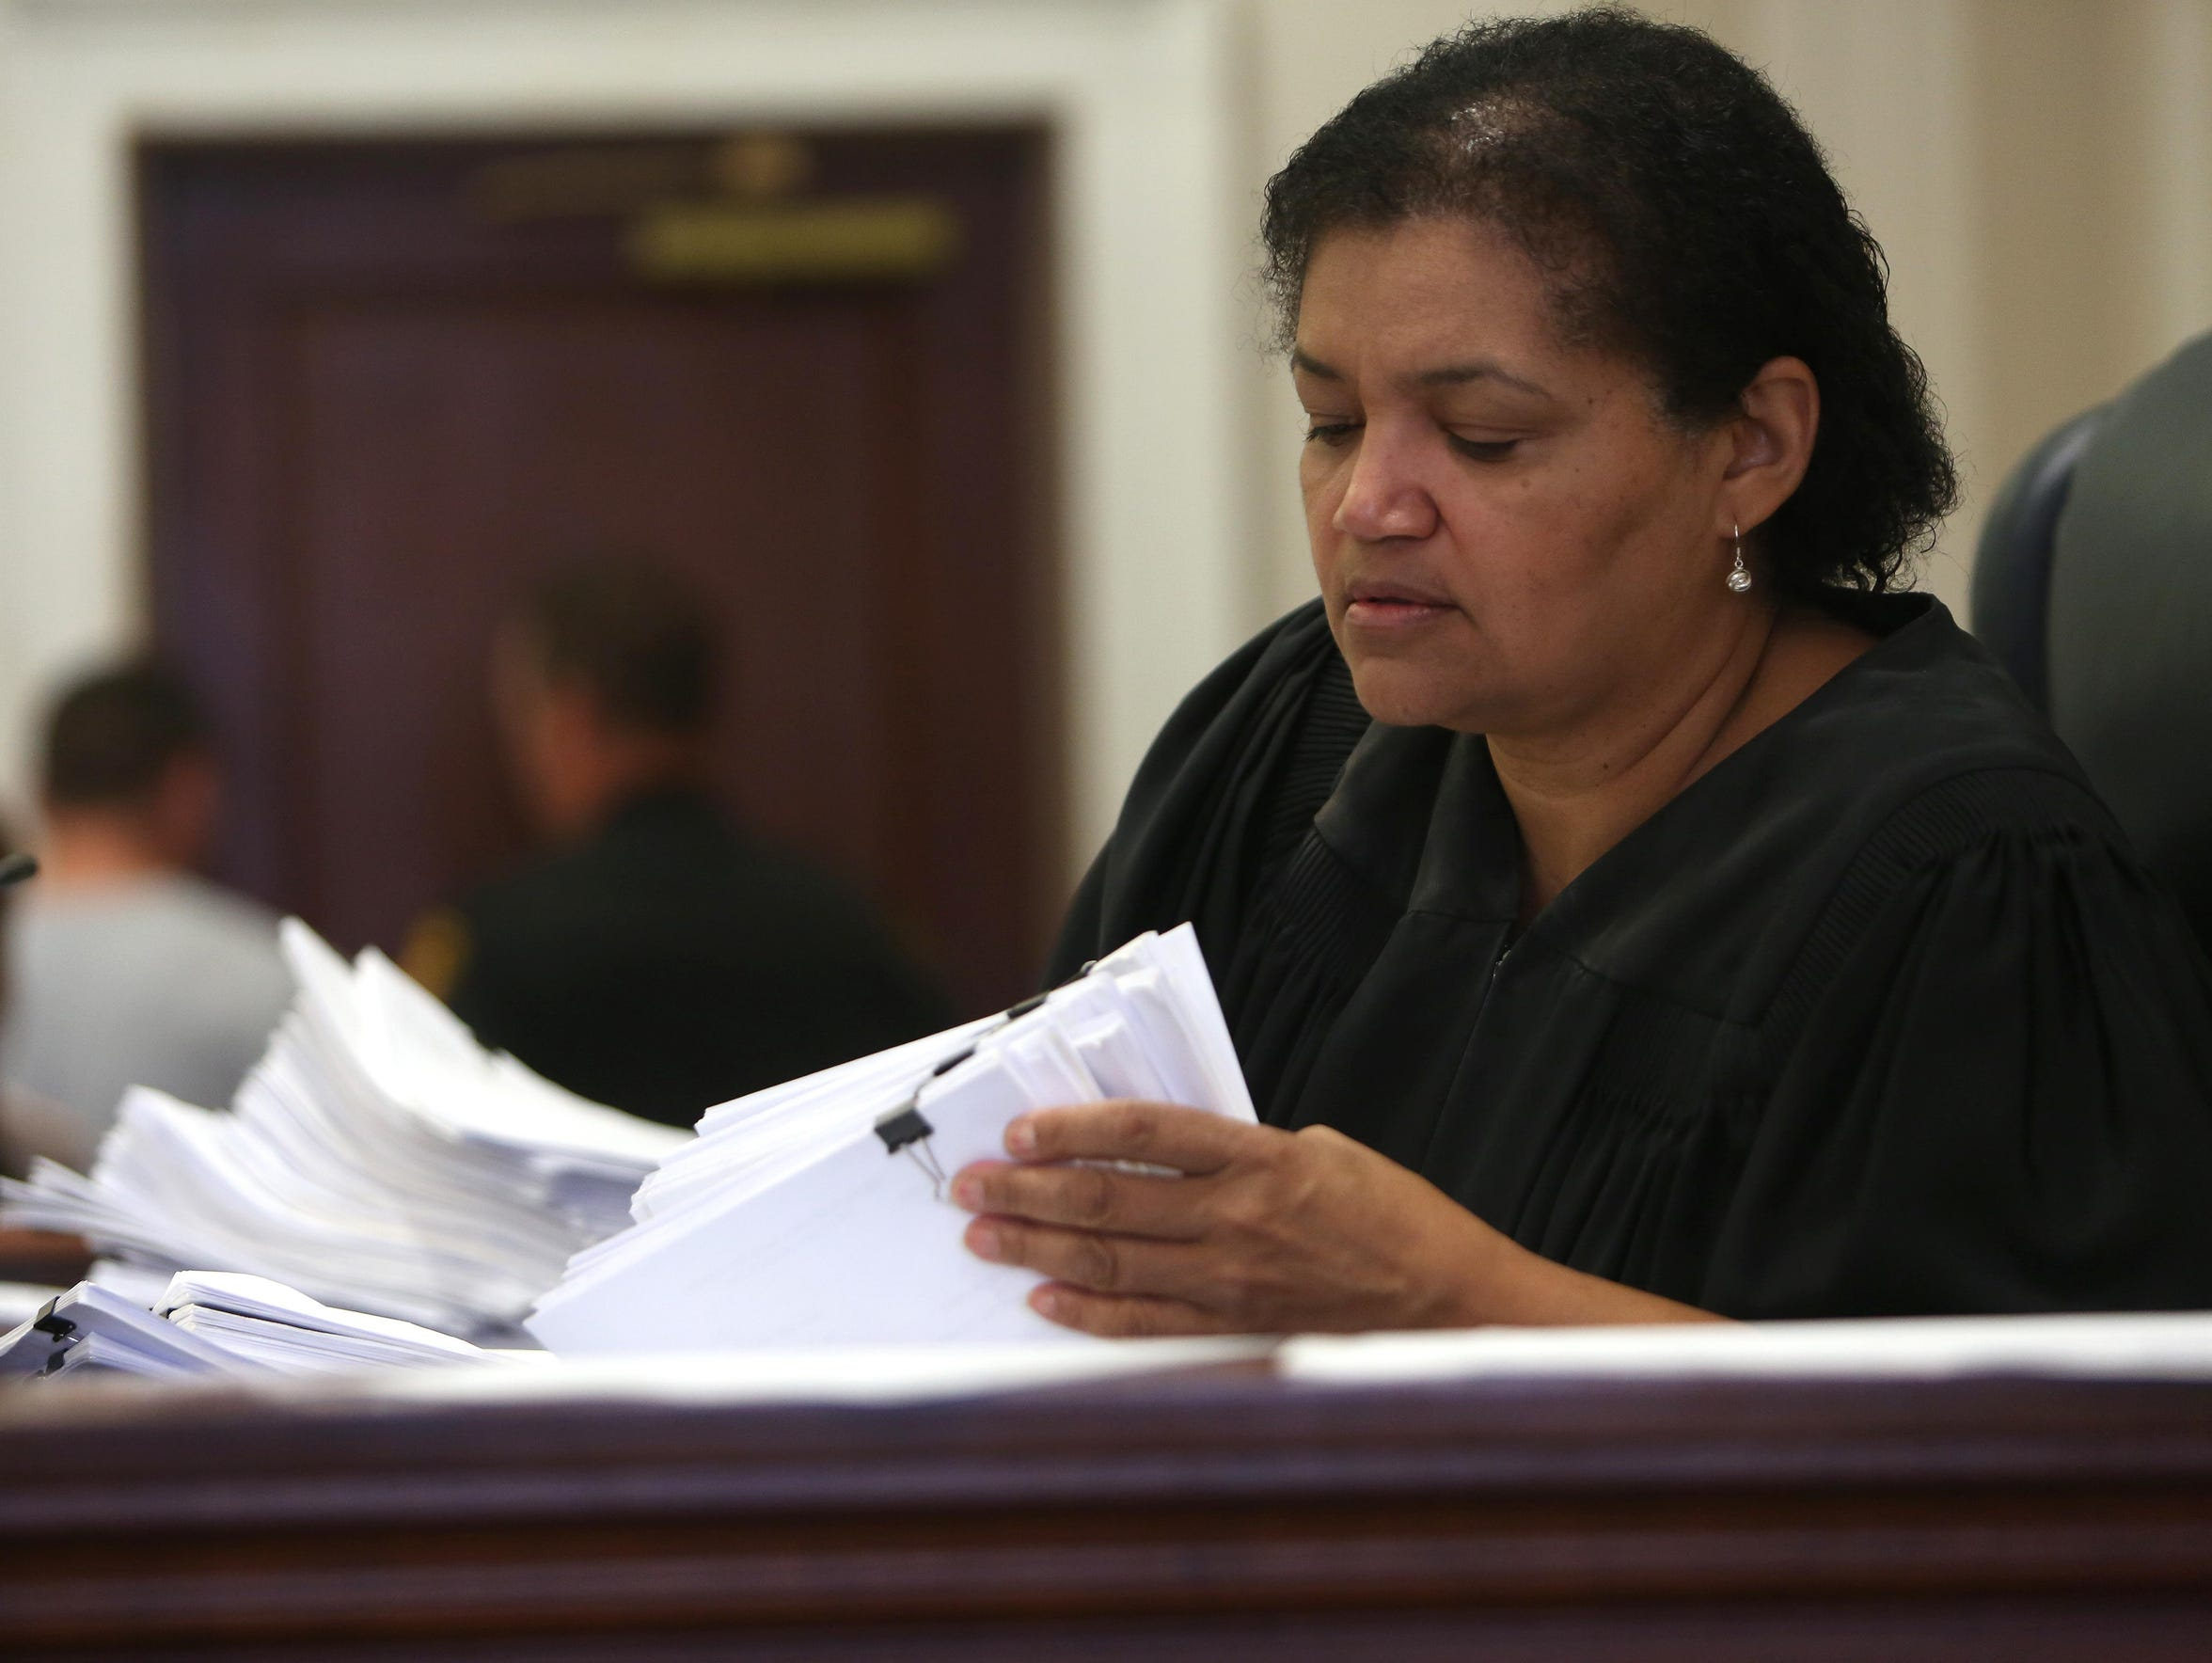 Hamilton County judge Kim Burke riffles through a stack